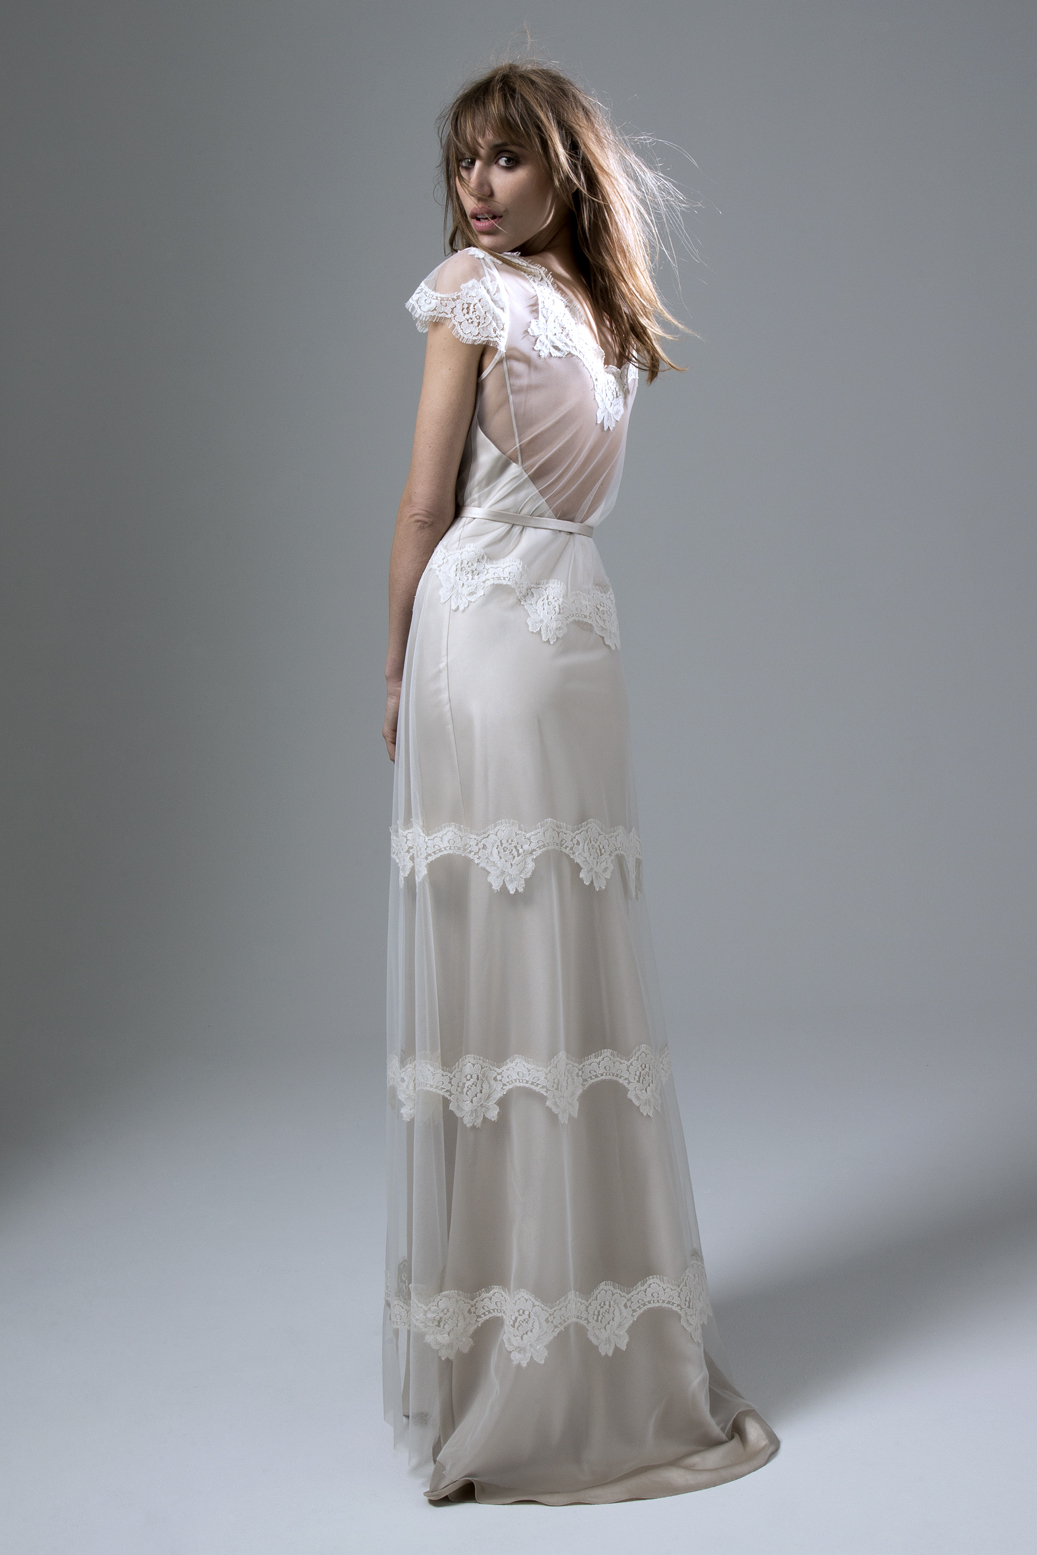 Back View of the Emily Tulle and French Lace Dress with Narrow Belt Wedding Dress by Halfpenny London